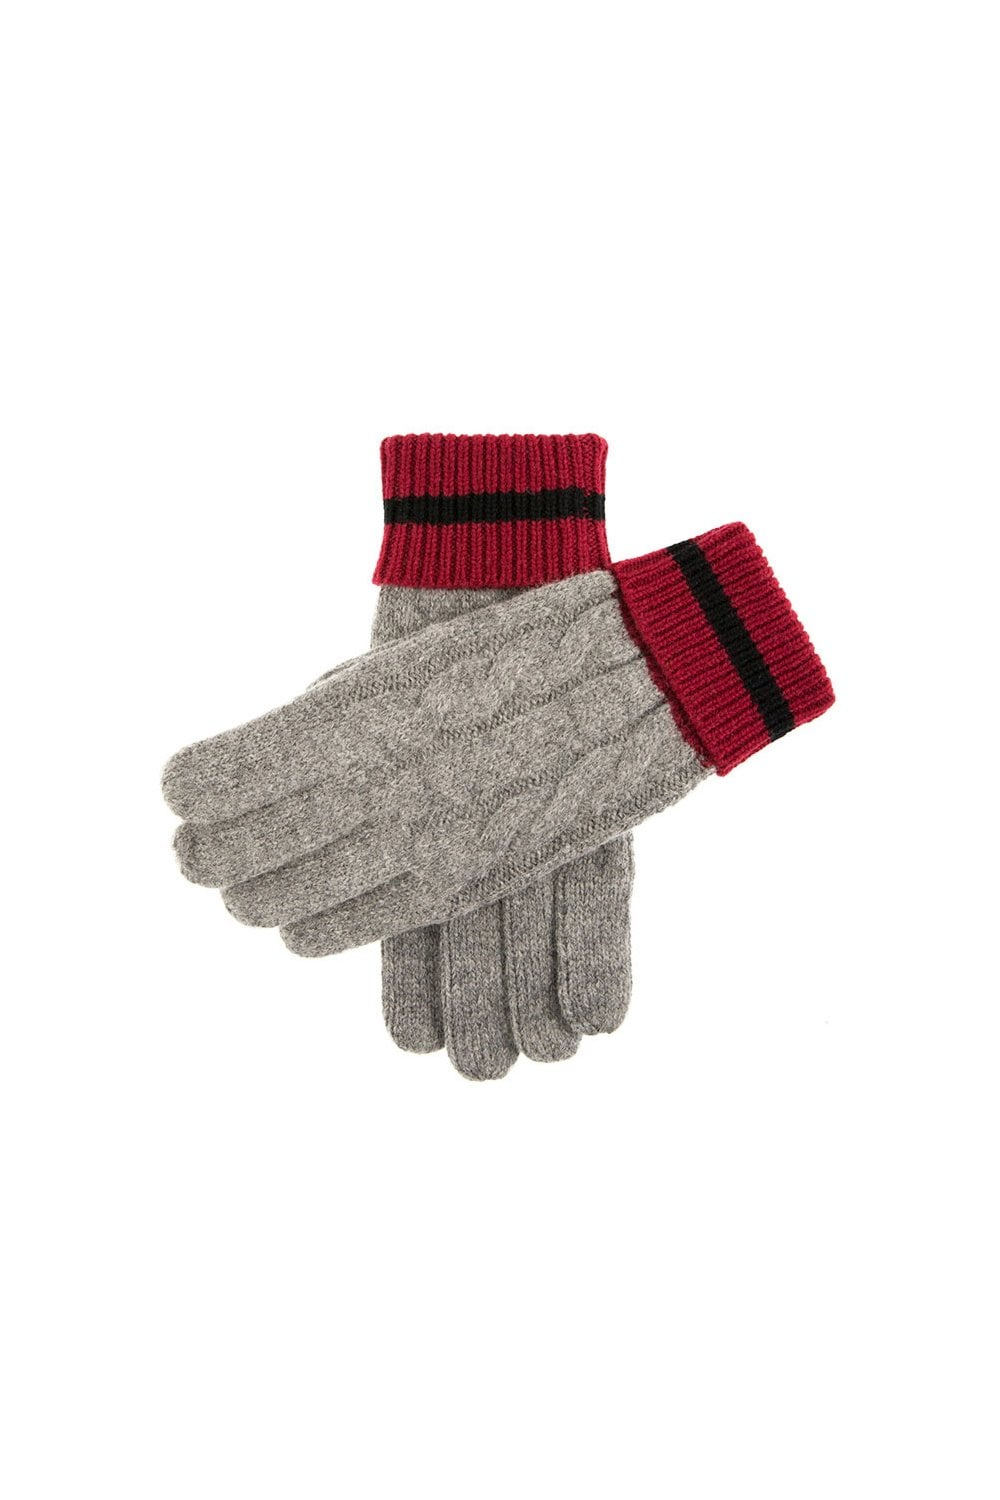 ae4061da457 Dents Mens Holwick Cable Knit Gloves - Grey Burgundy - Menswear from ...